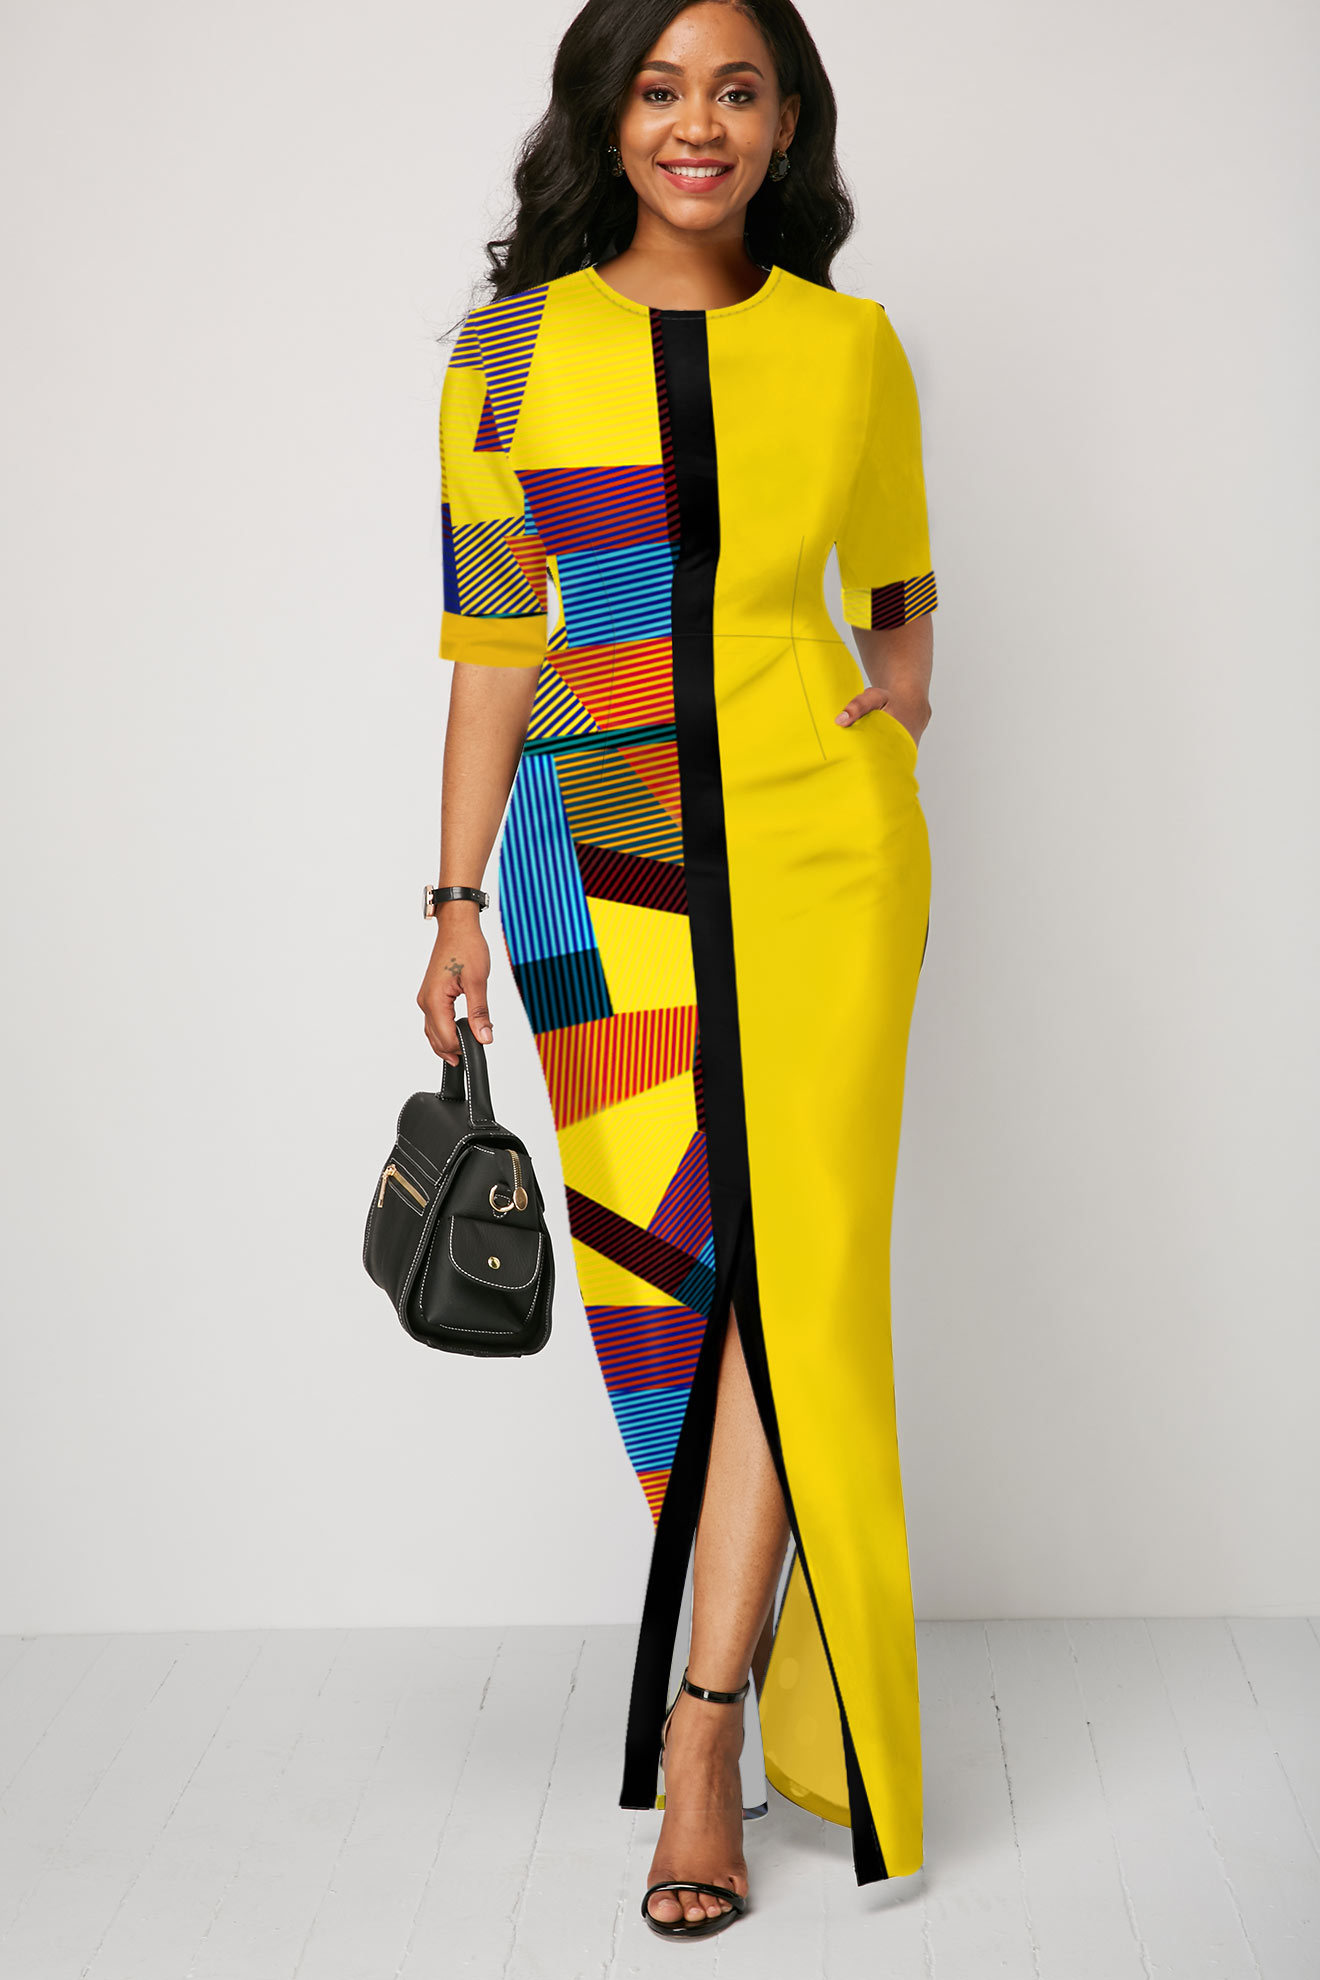 Half Sleeve Geometric Print Yellow Maxi Dress